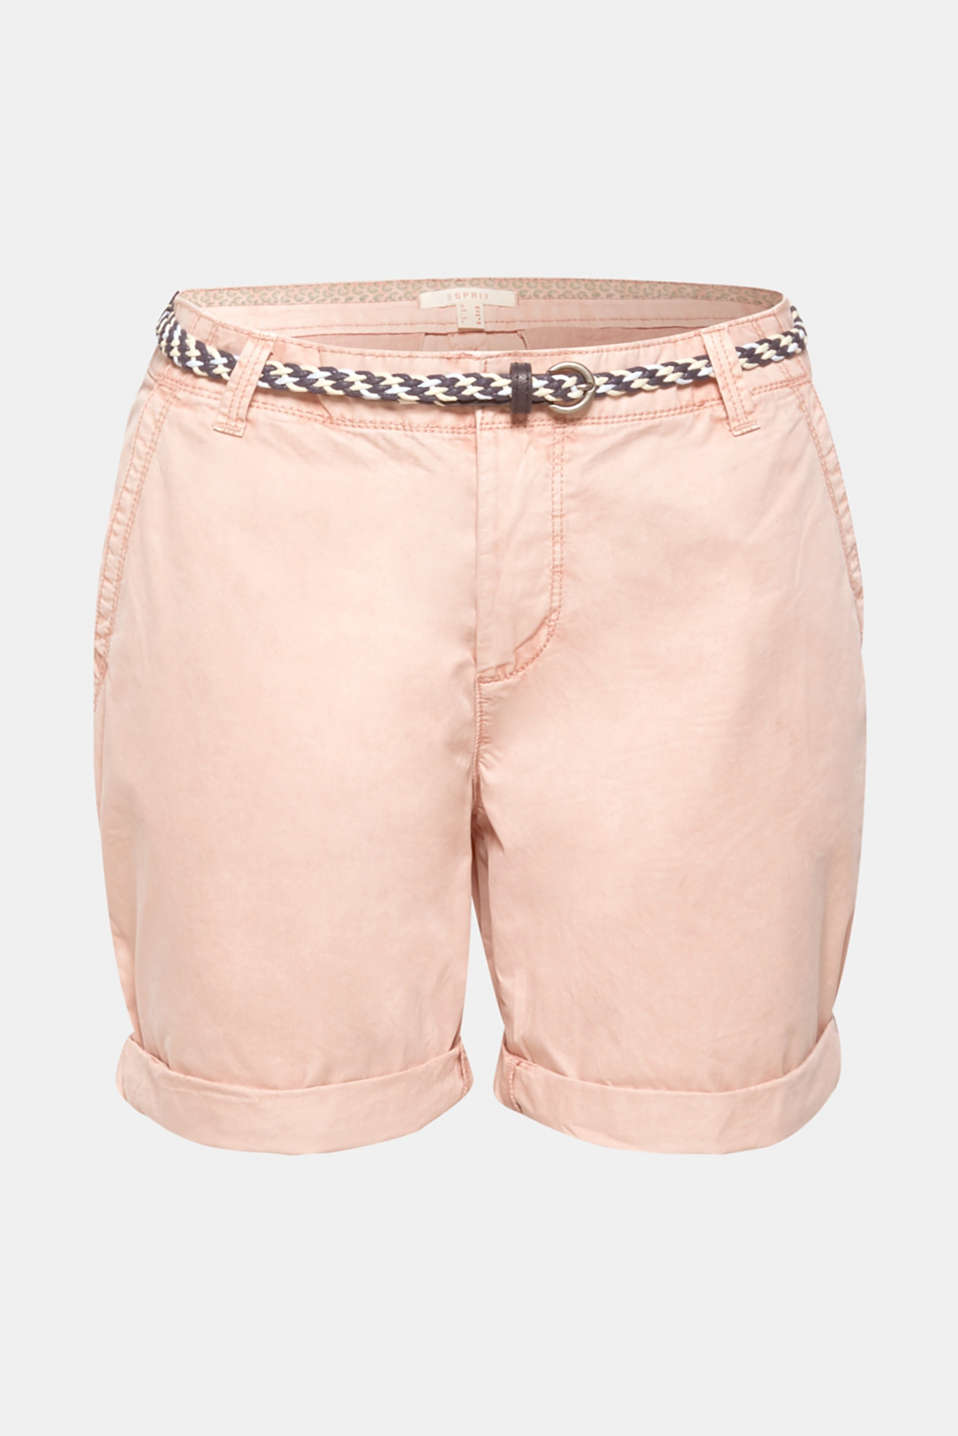 Shorts in a garment-washed look, 100% cotton, LIGHT PINK, detail image number 6